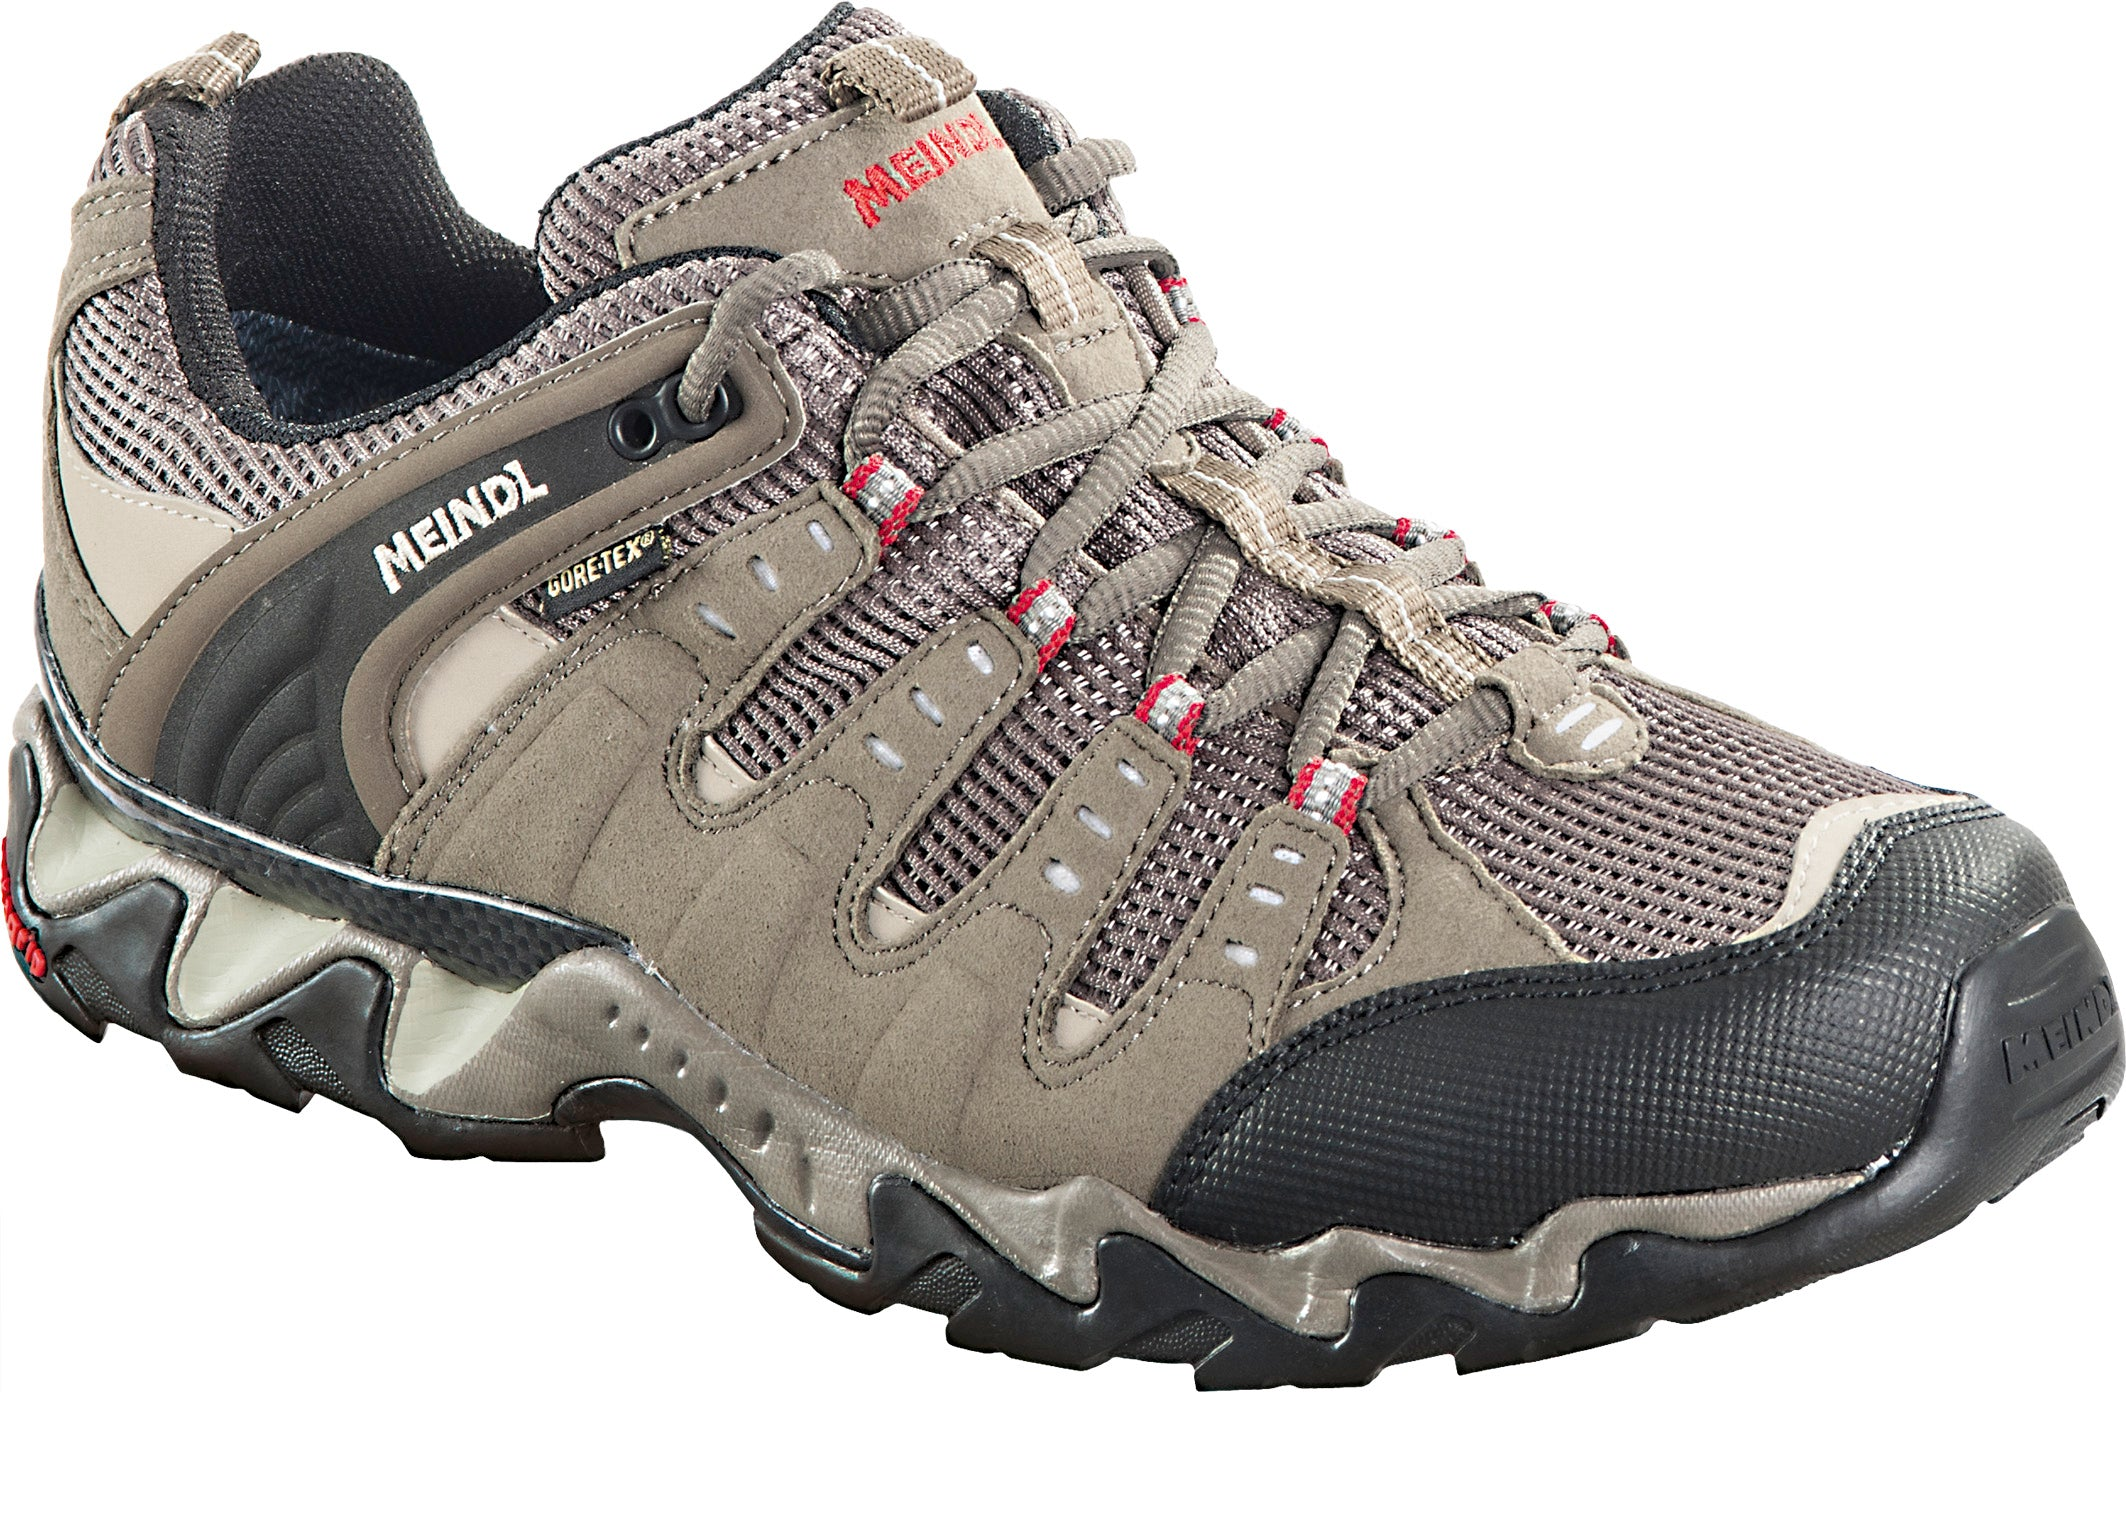 Meindl Respond GTX for Men in Reed